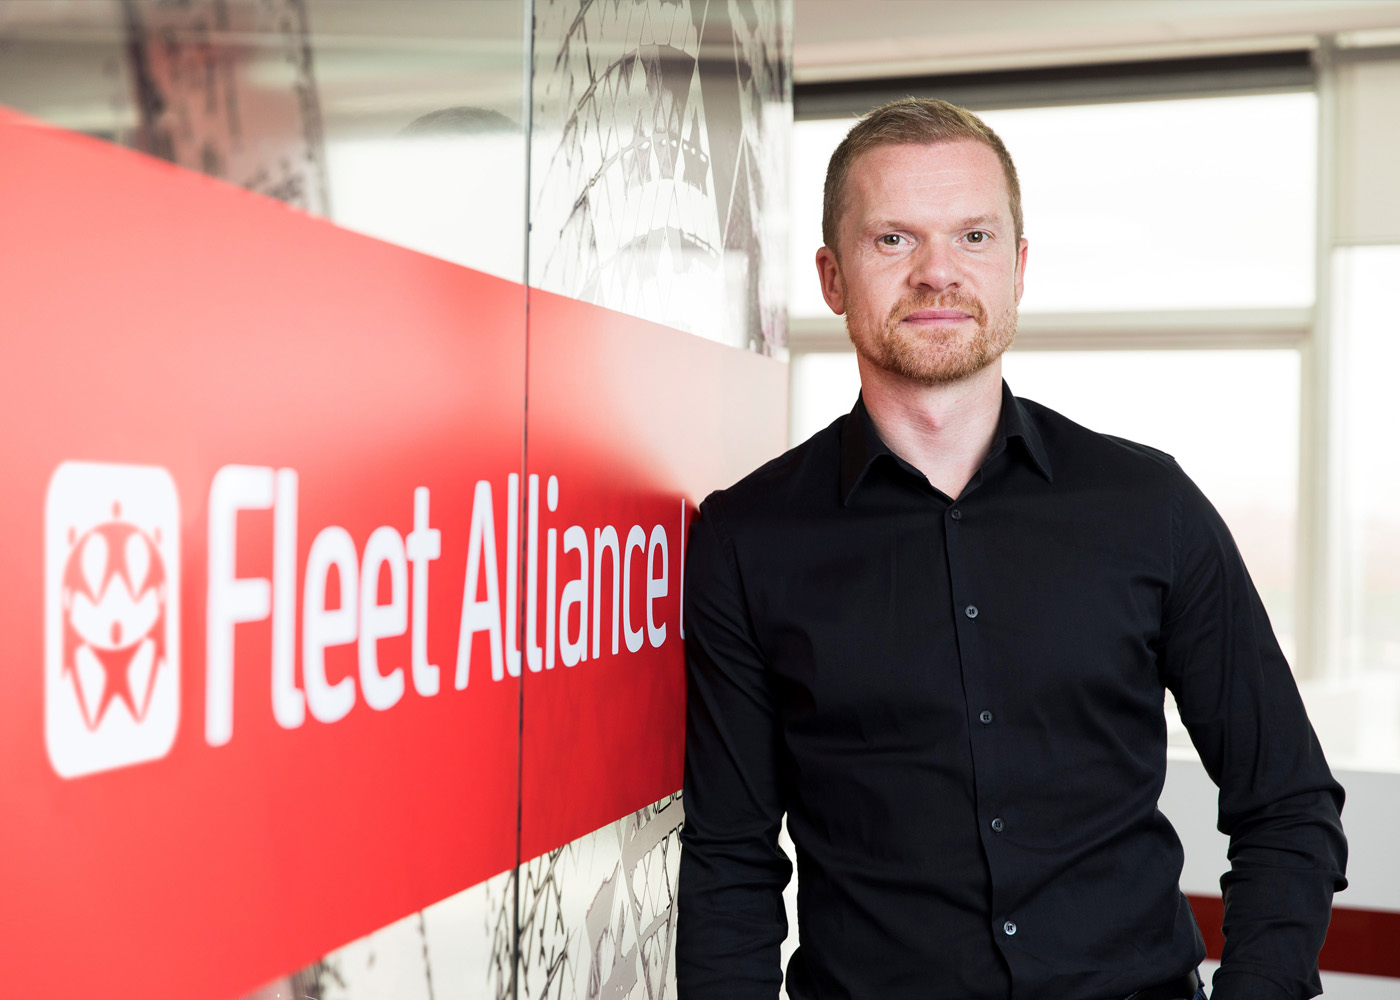 Fundamentals of UK fleet industry are strong